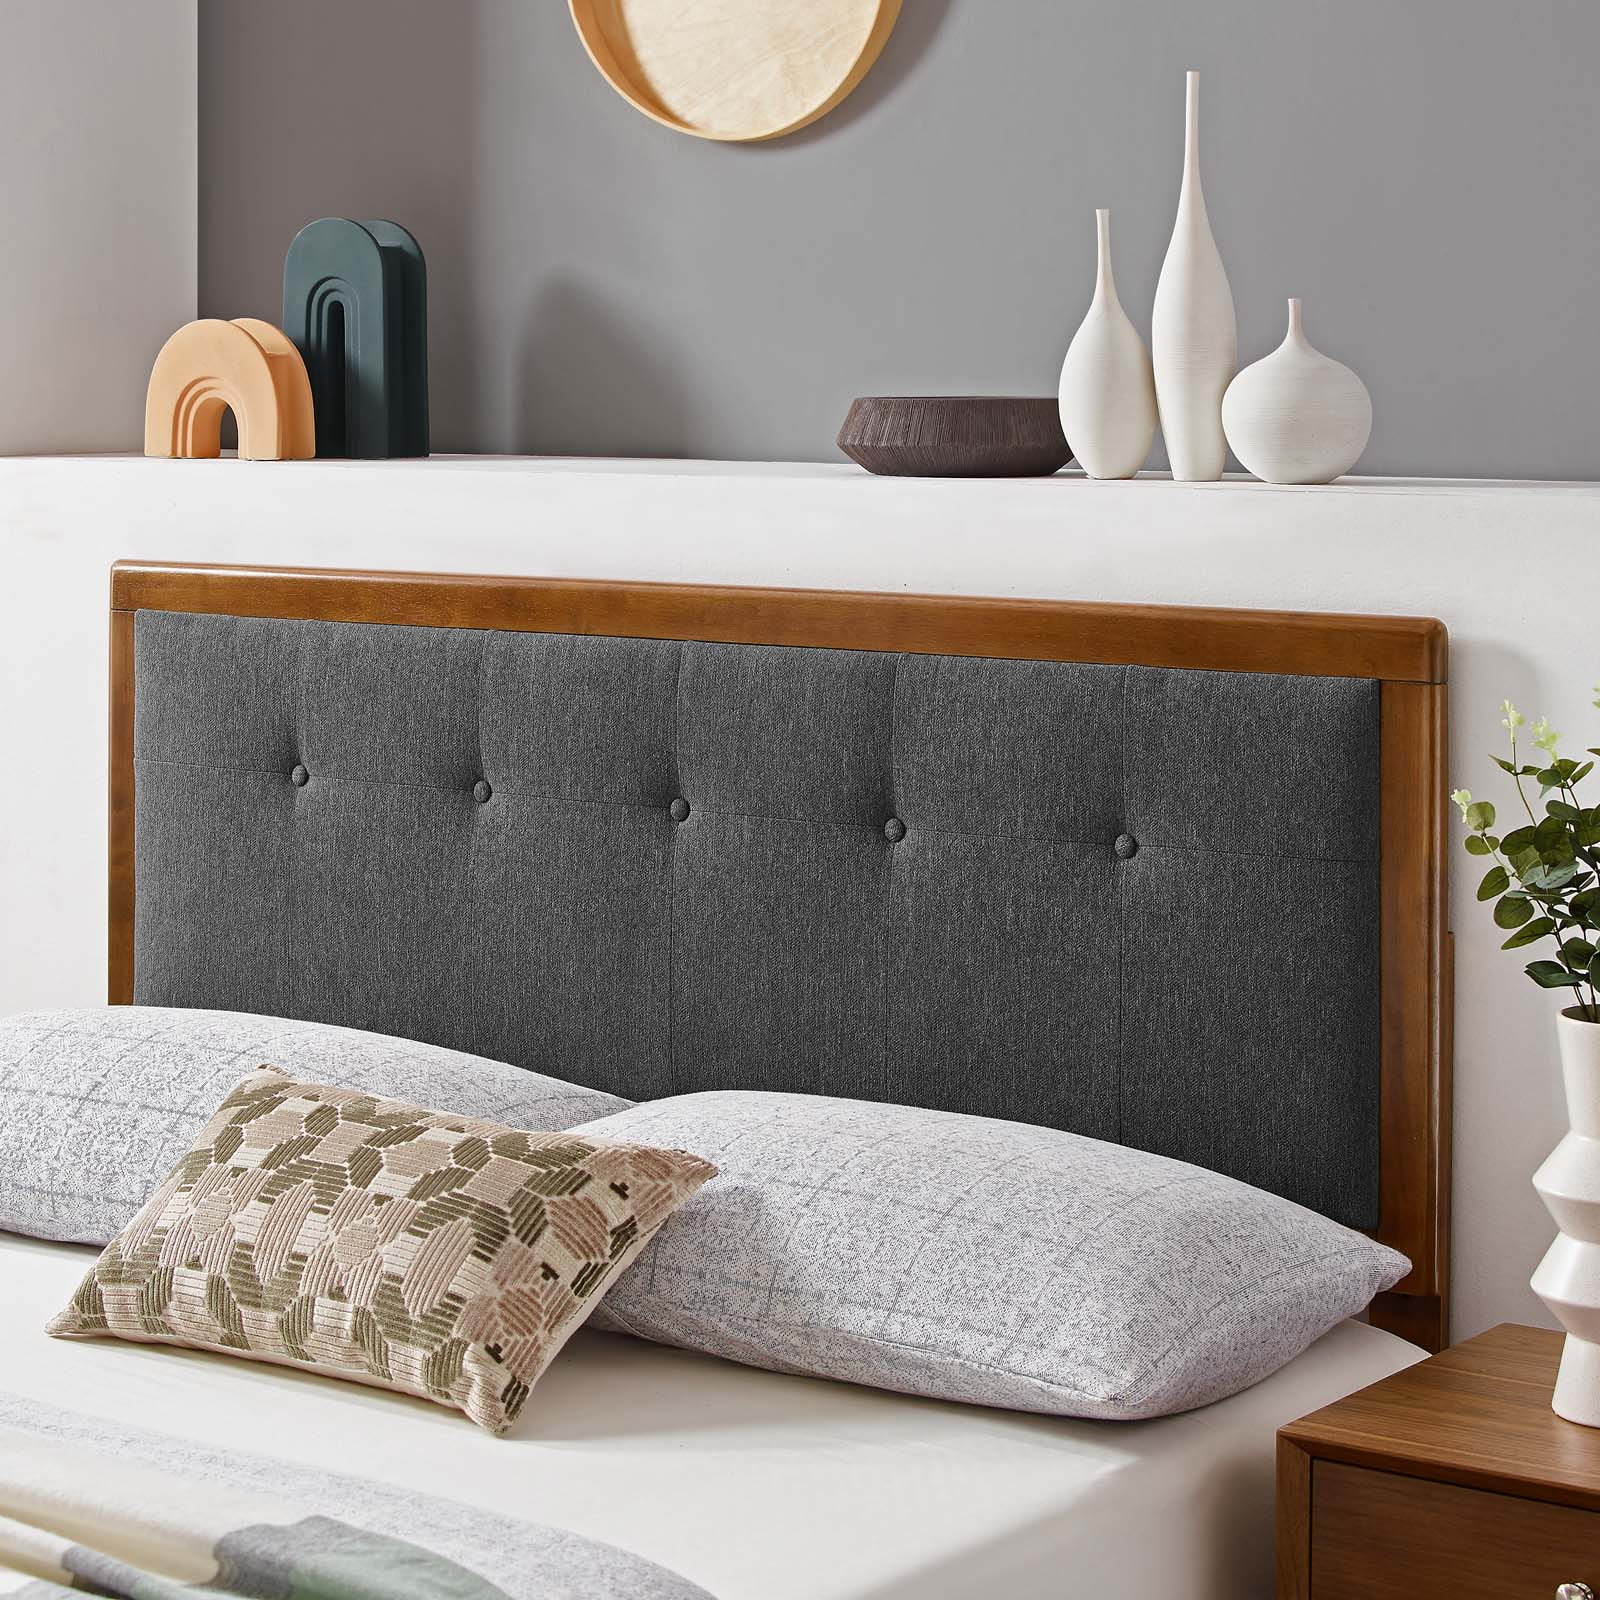 Modway Draper Tufted King Fabric And Wood Headboard Multiple Colors Walmart Com Walmart Com